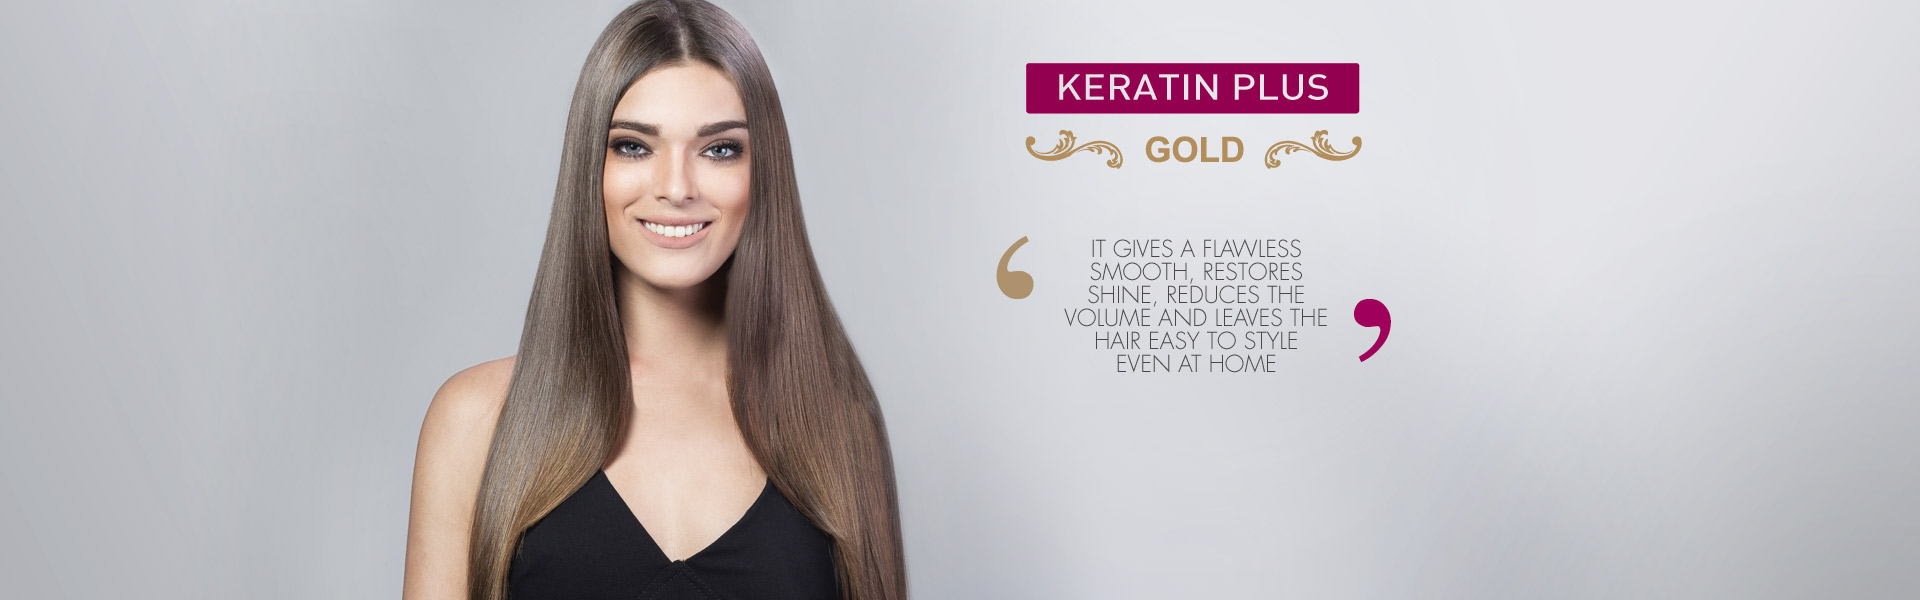 smoothing keratin plus gold